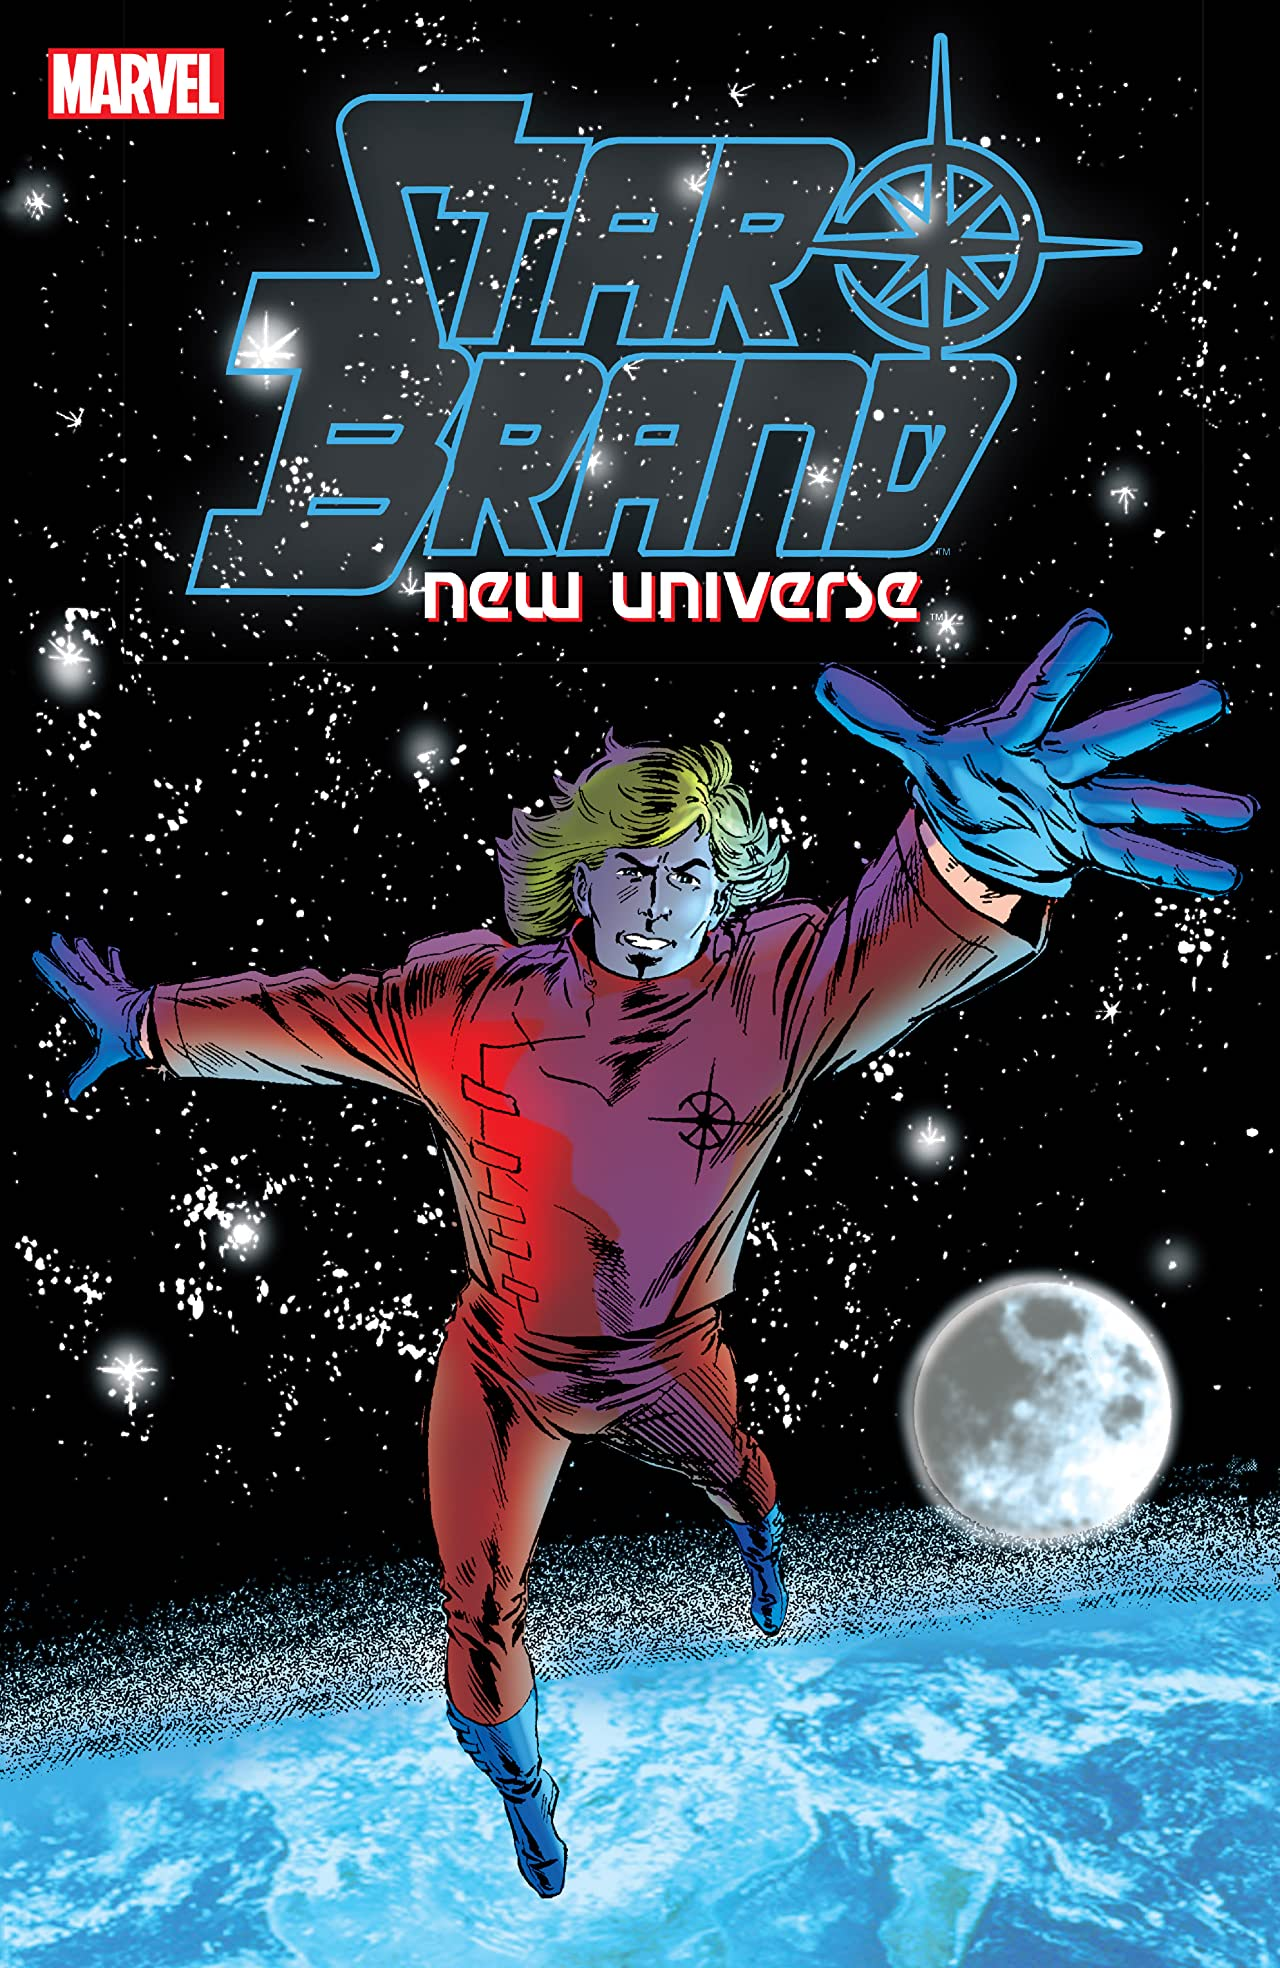 Star Brand: New Universe Vol. 1